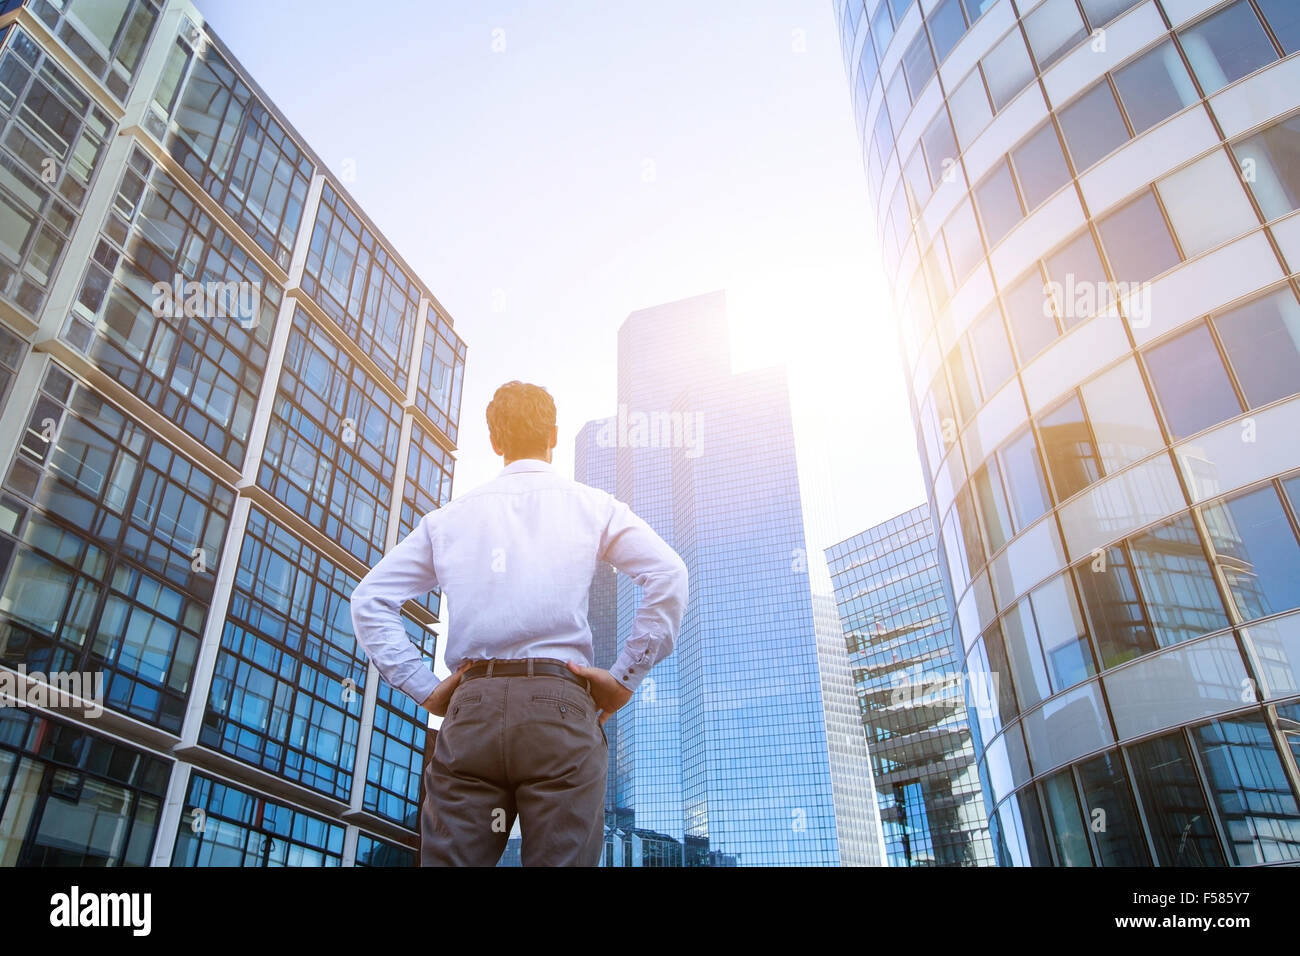 career concept, business background, man looking at office buildings - Stock Image